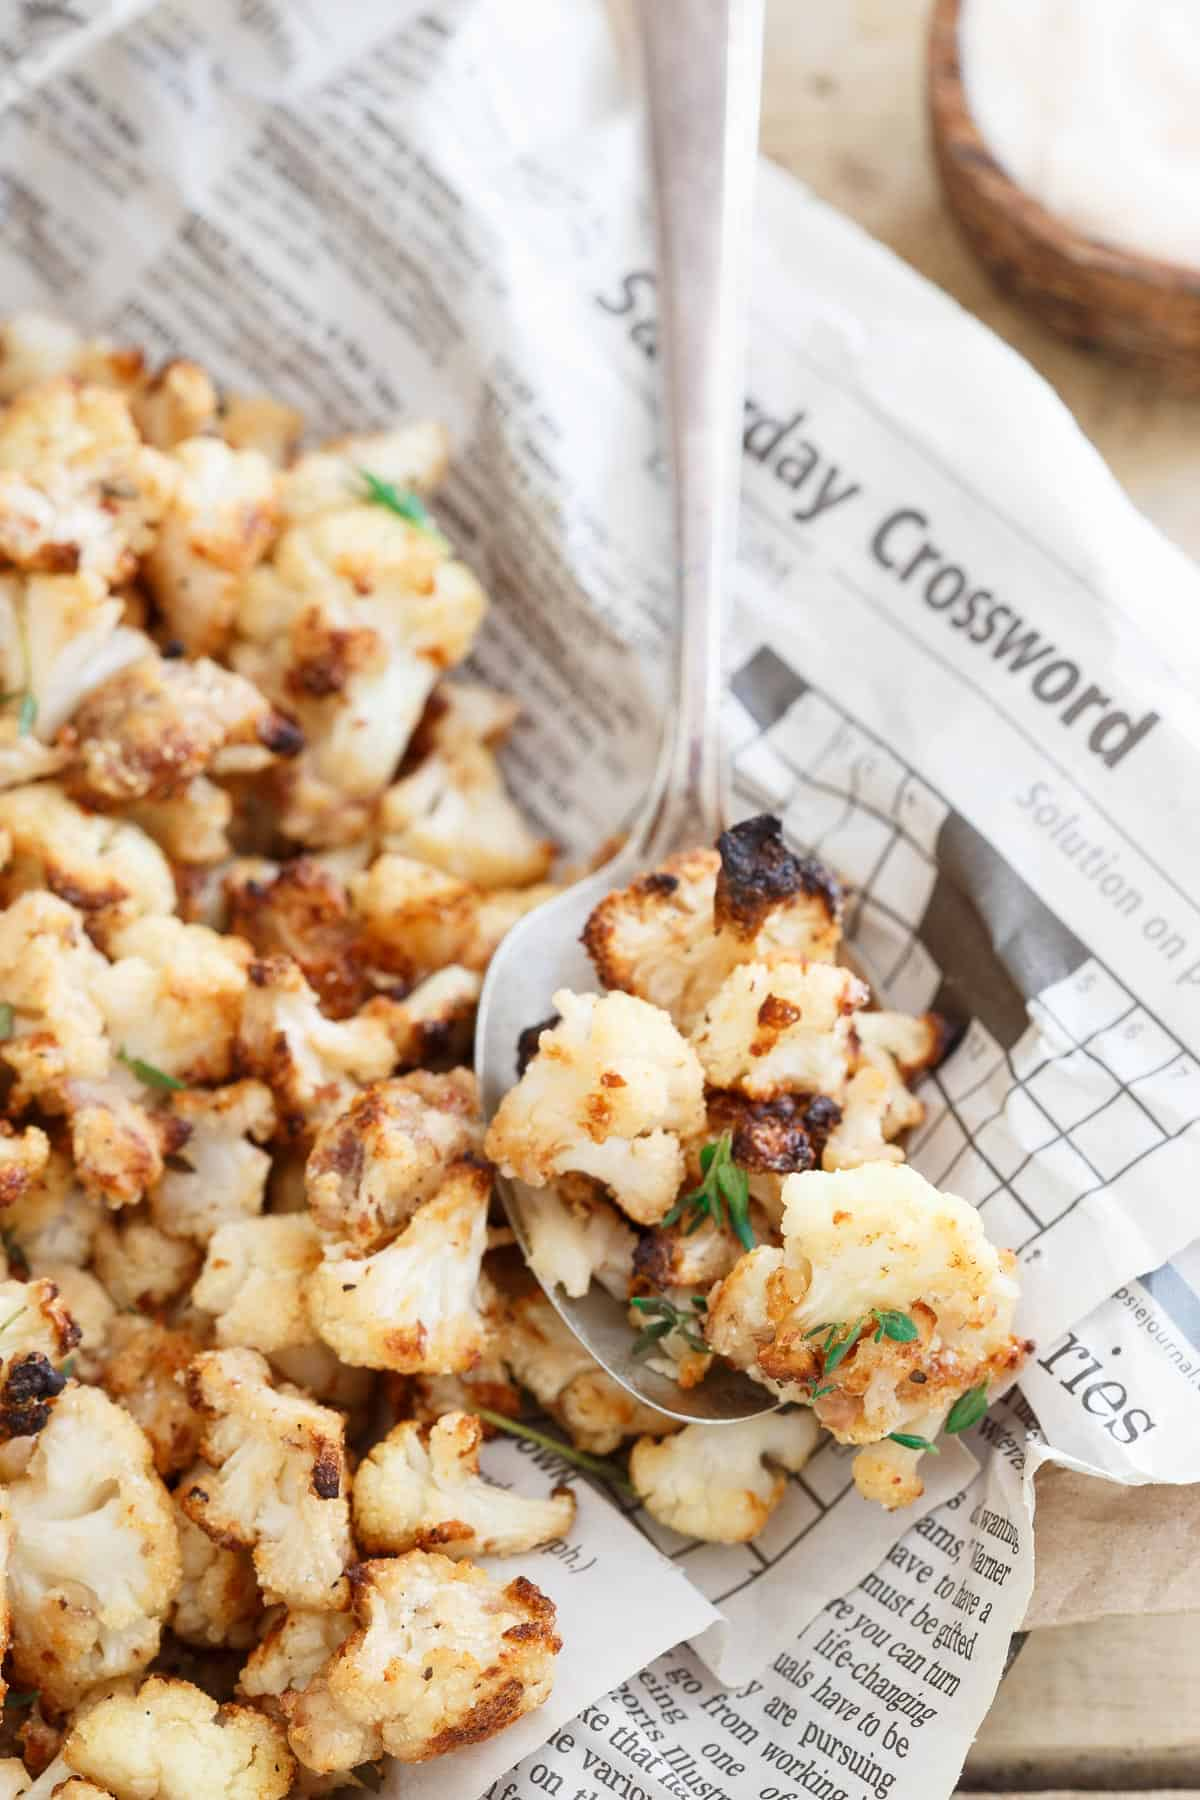 Salt and Vinegar Popcorn Cauliflower is a healthier way to get your appetizer on!